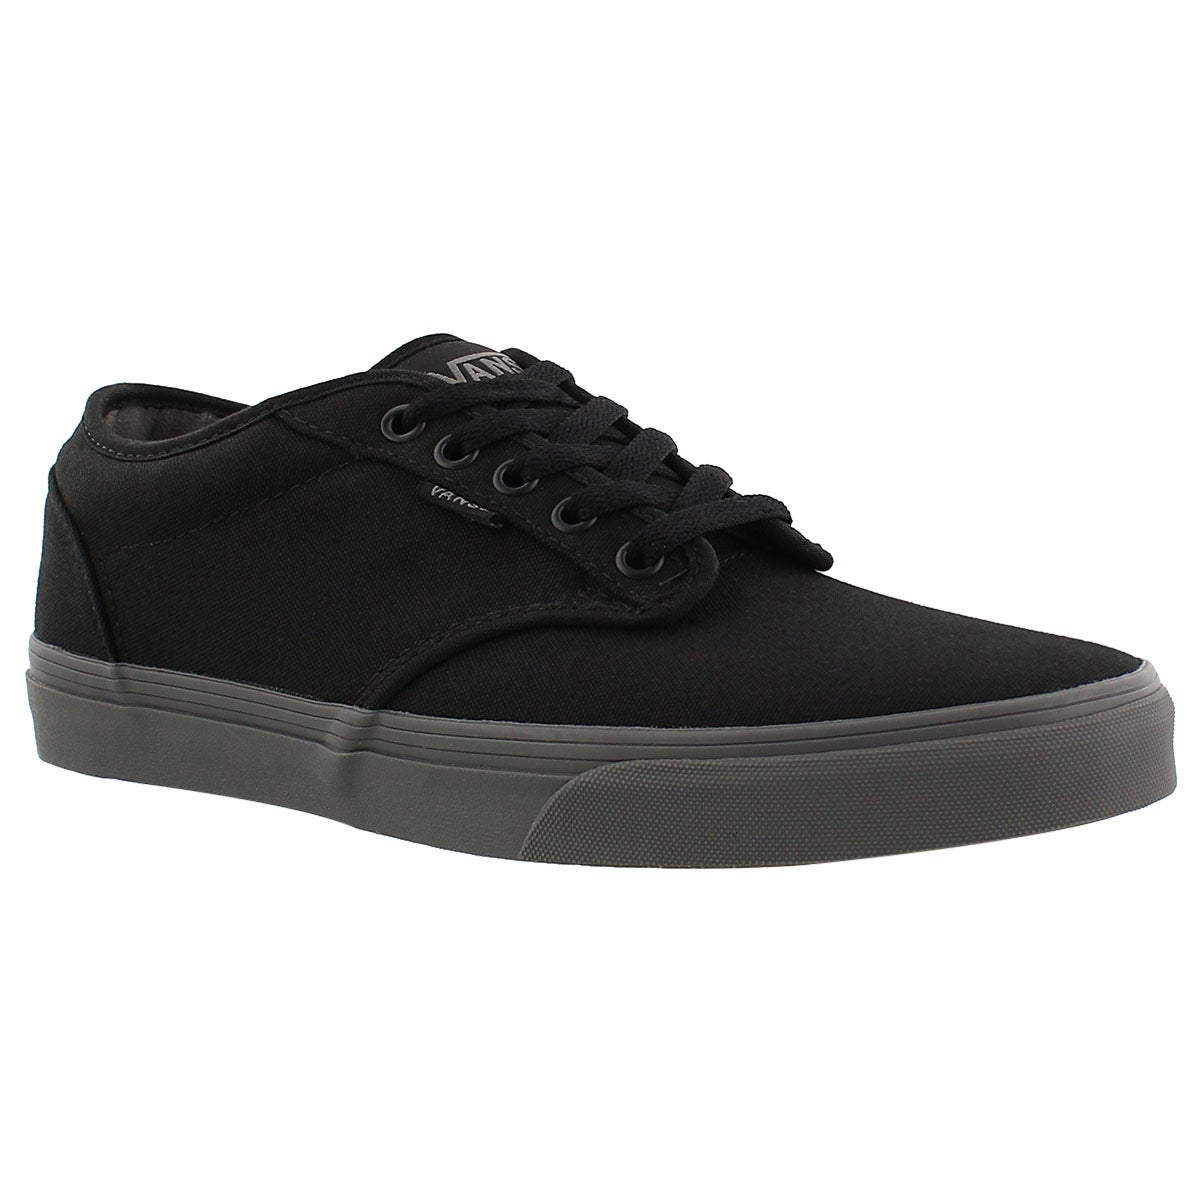 Men's ATWOOD black/grey canvas lace up sneakers